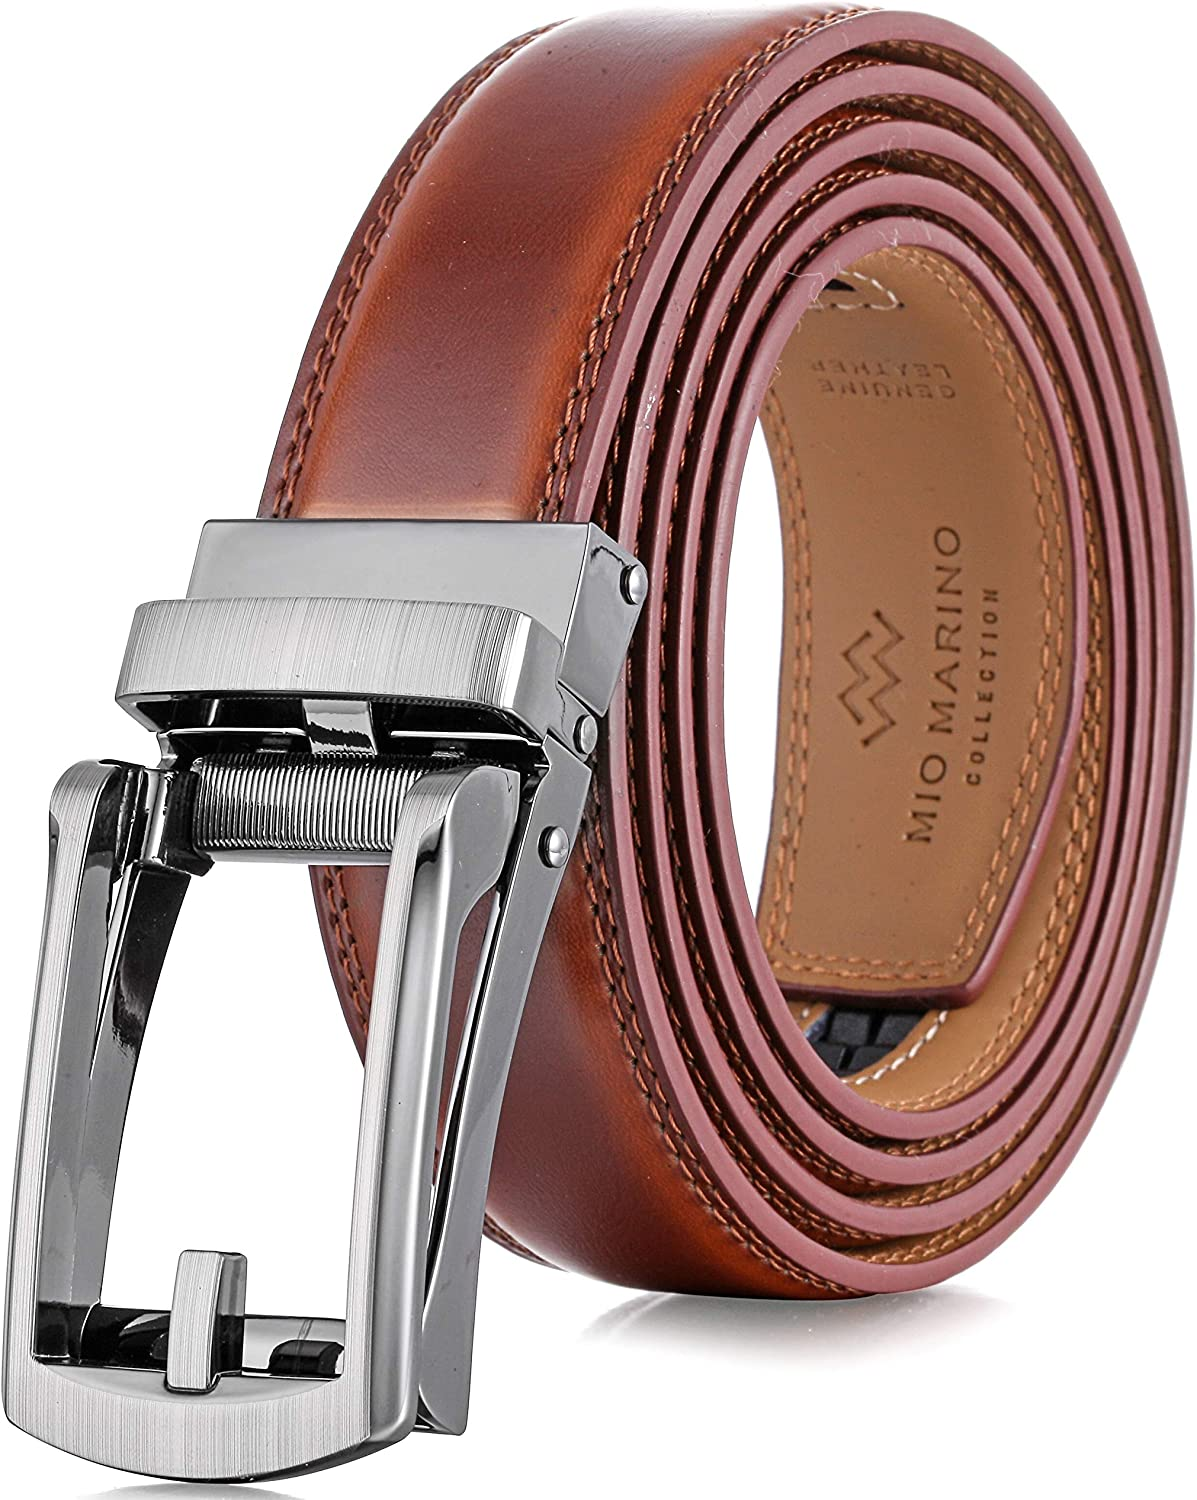 Marino Men's Comfort Click Ratchet Belt with Traditional Look - Genuine Leather with Linxx Adjustable Buckle - 1.38